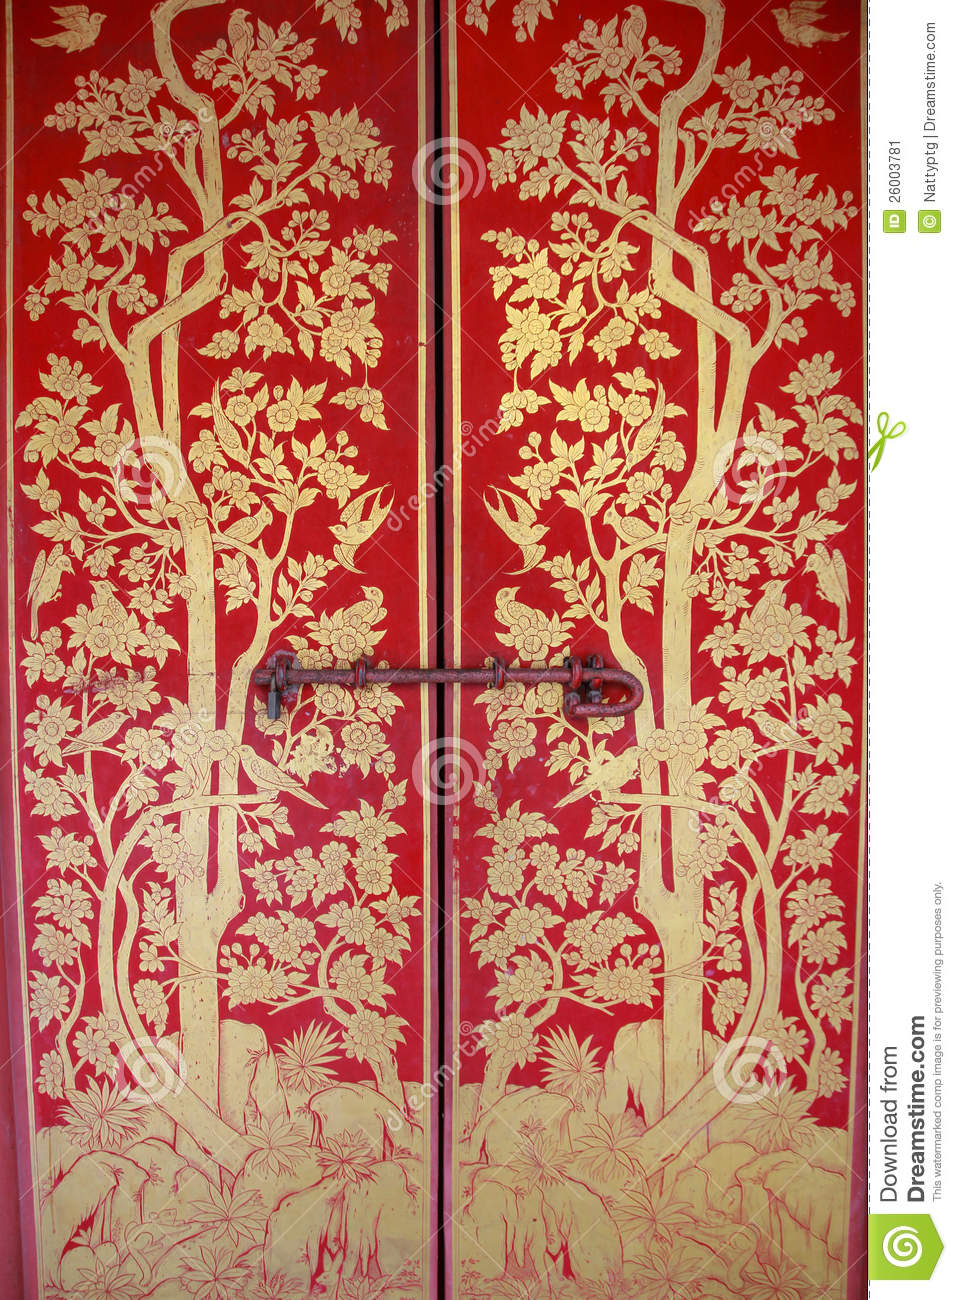 Red Door With Gold Painting Stock Image - Image: 26003781